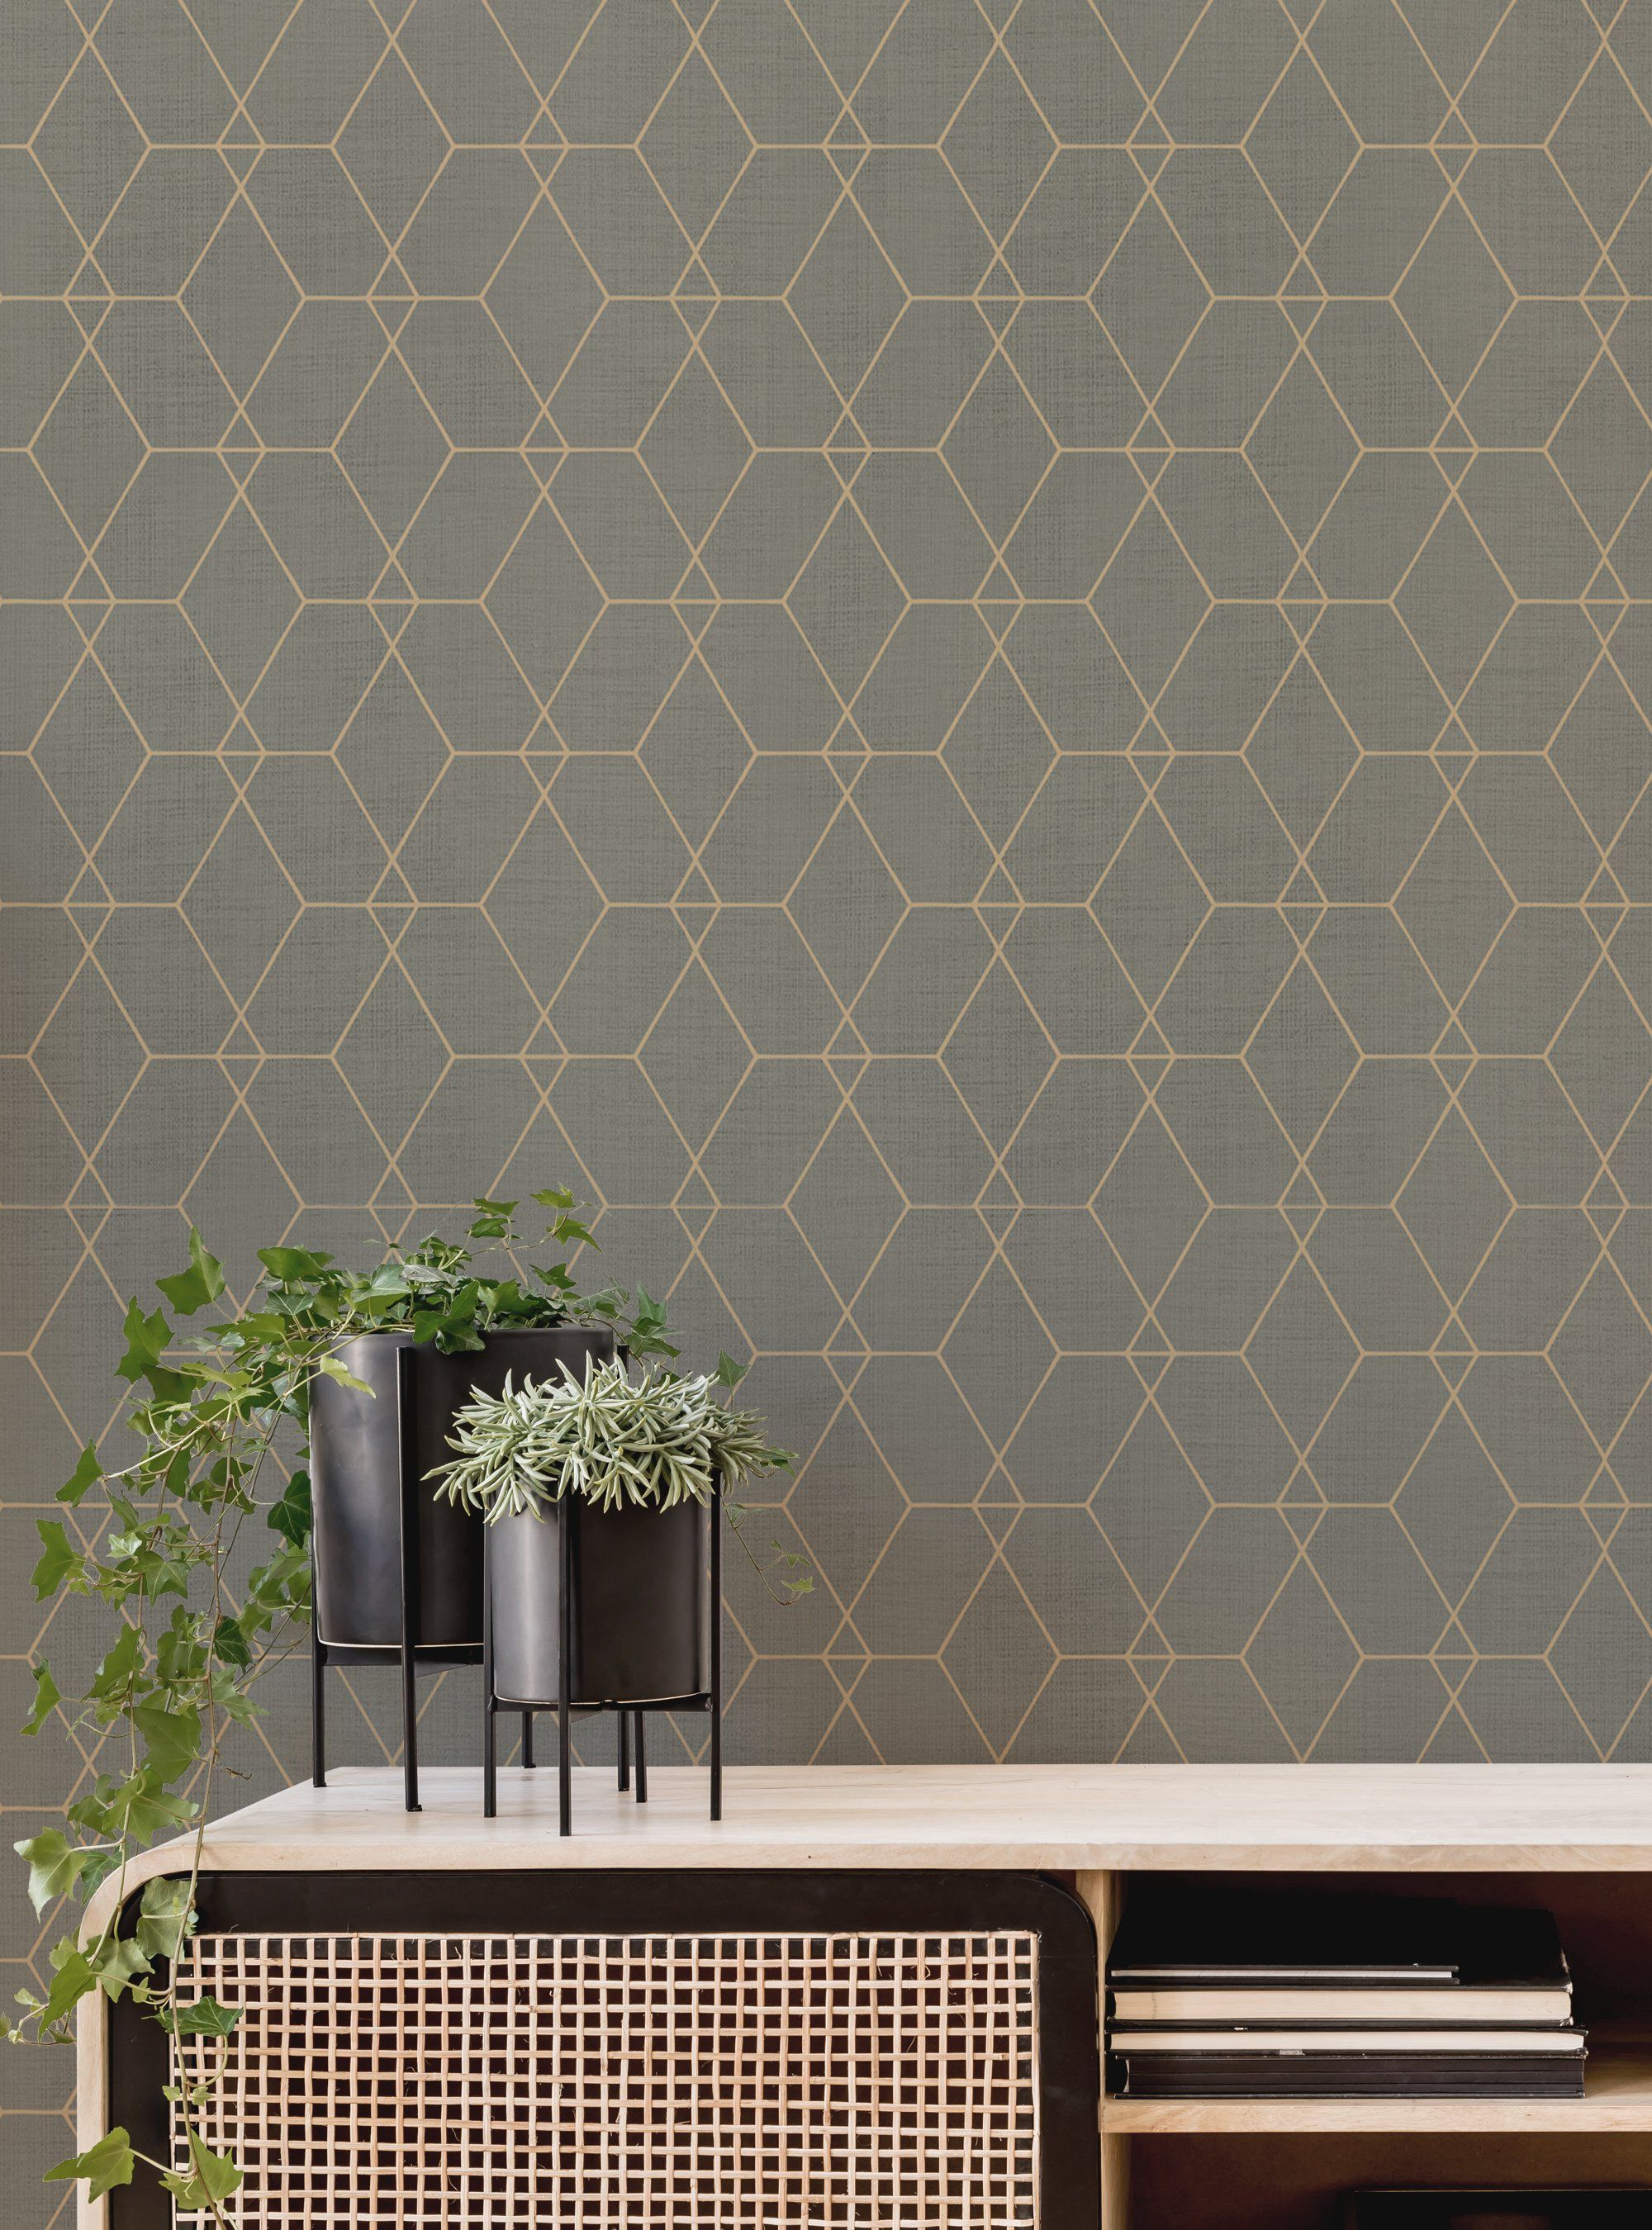 Tree Leaves Wallpaper Simple Shapes Removable Peel And Stick Etsy Tree Leaf Wallpaper Leaf Wallpaper Diy Wallpaper